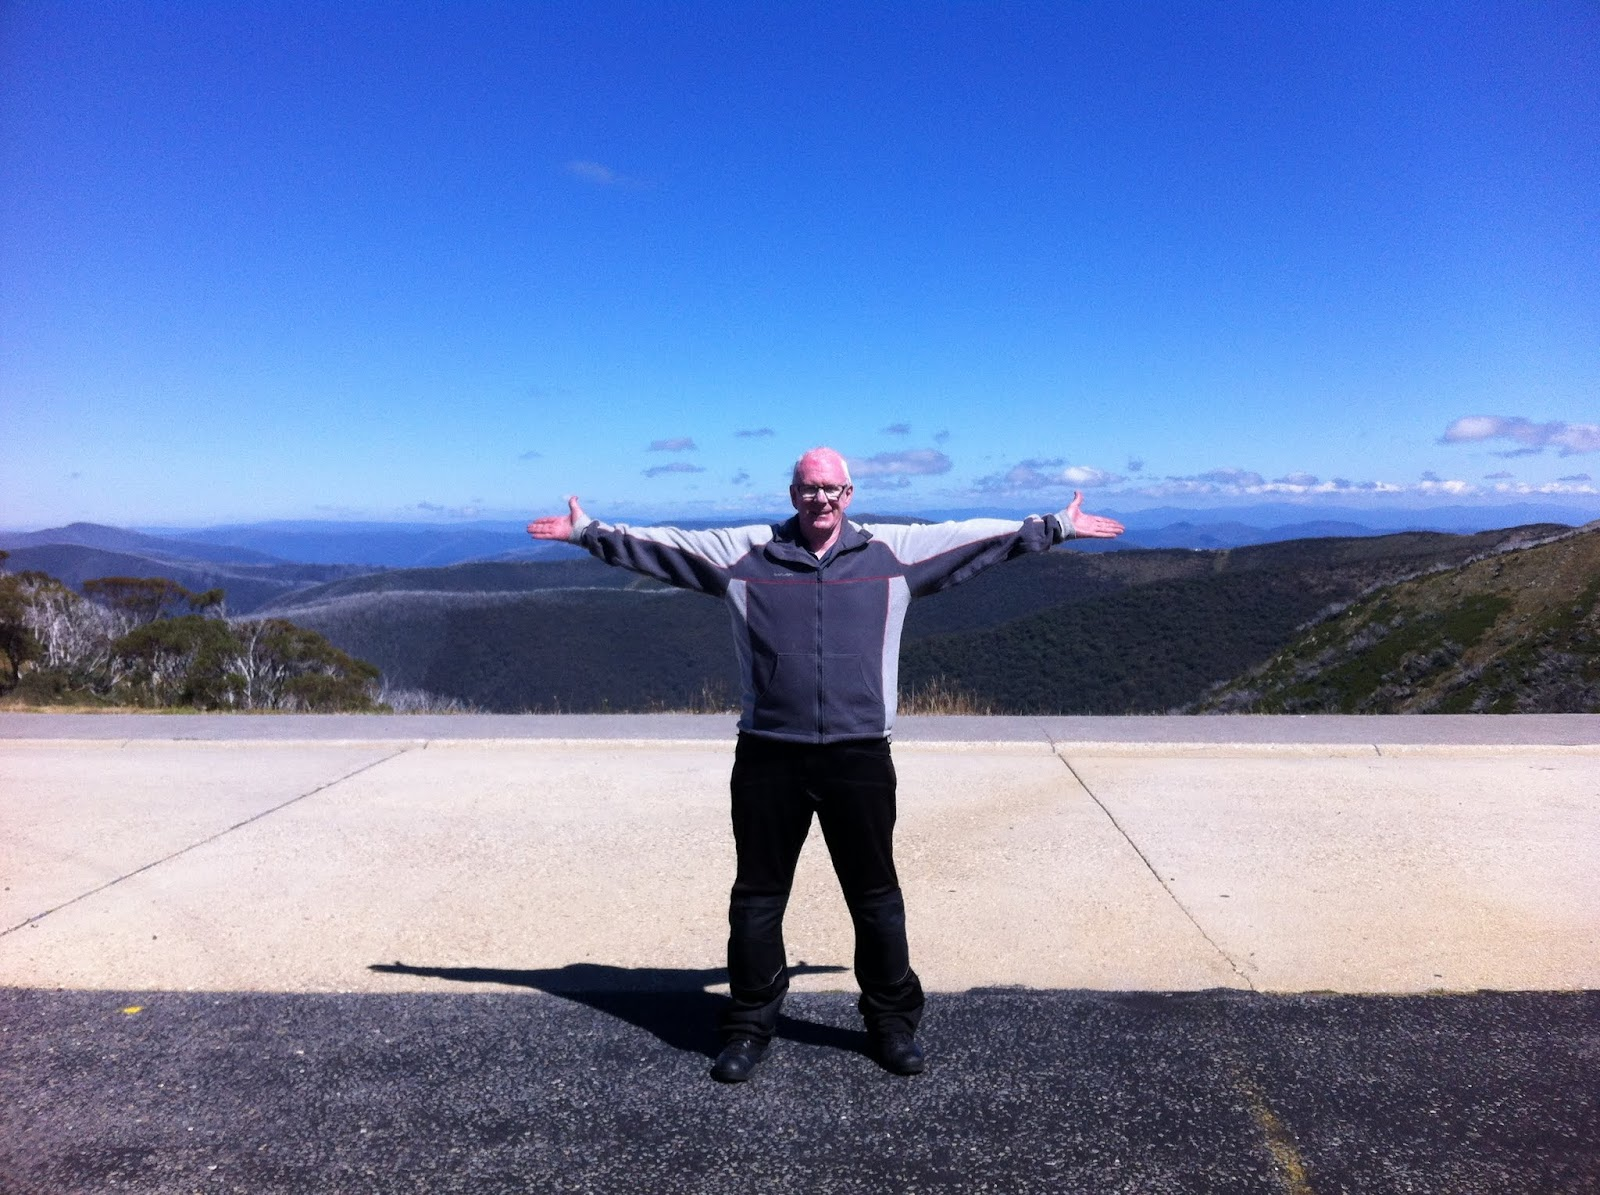 toronto to melbourne day 9 great alpine road lakes. Black Bedroom Furniture Sets. Home Design Ideas